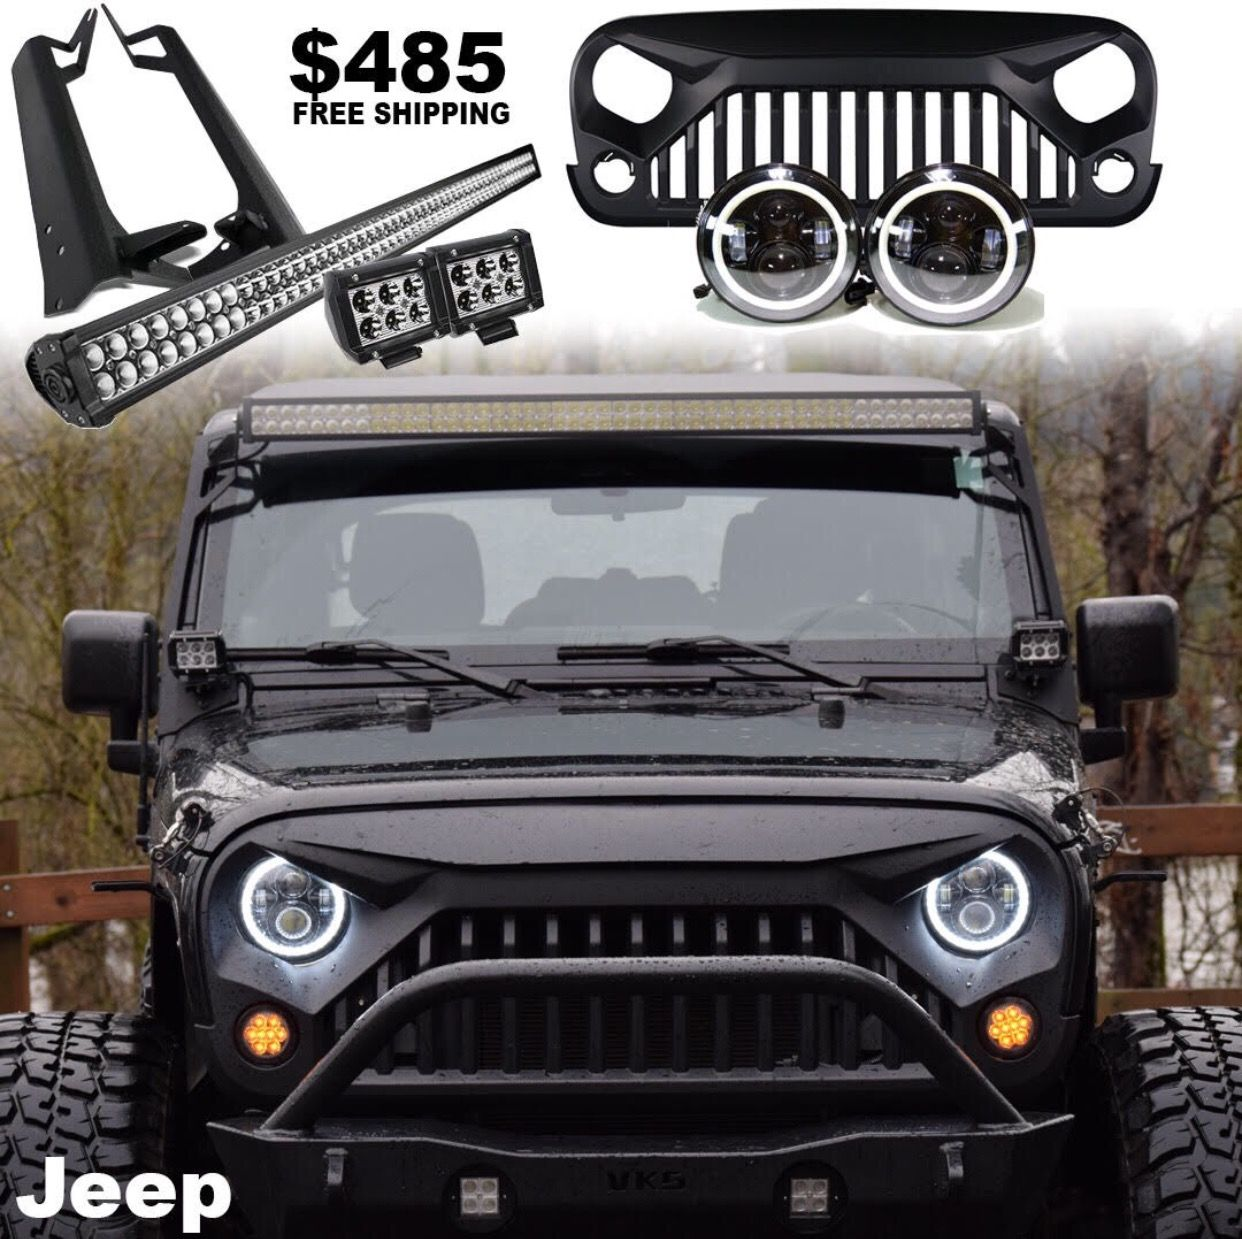 Jeep Wrangler mega bundle. Grille, halo headlights, light bar kits. Lifetime warranty. Visit Our website